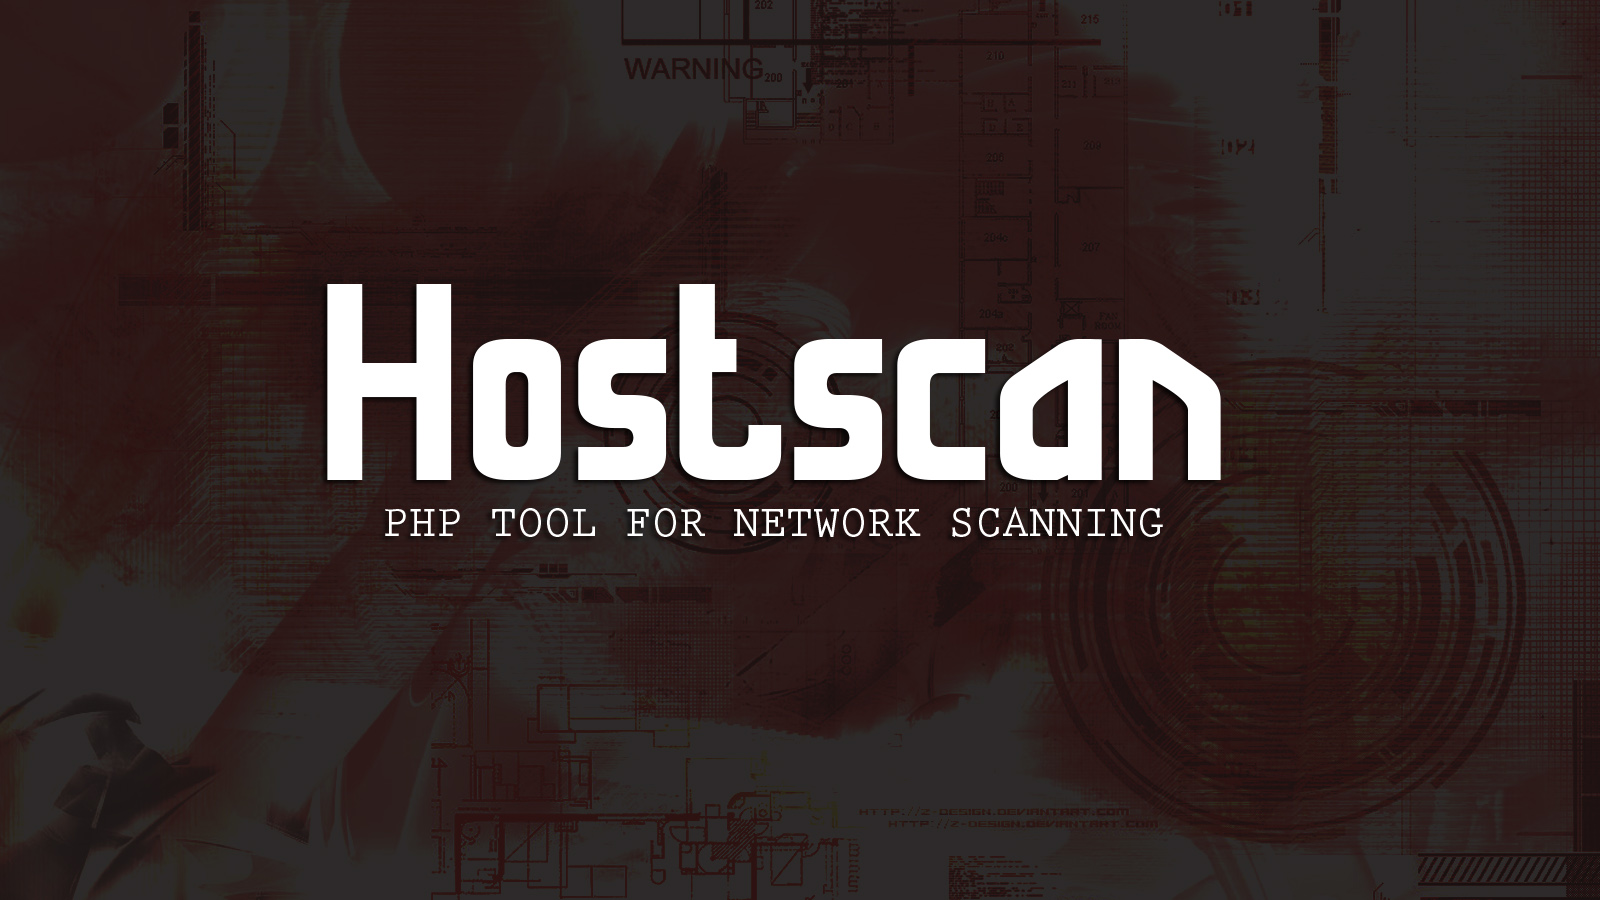 Hostscan - PHP Tool for Network Scanning